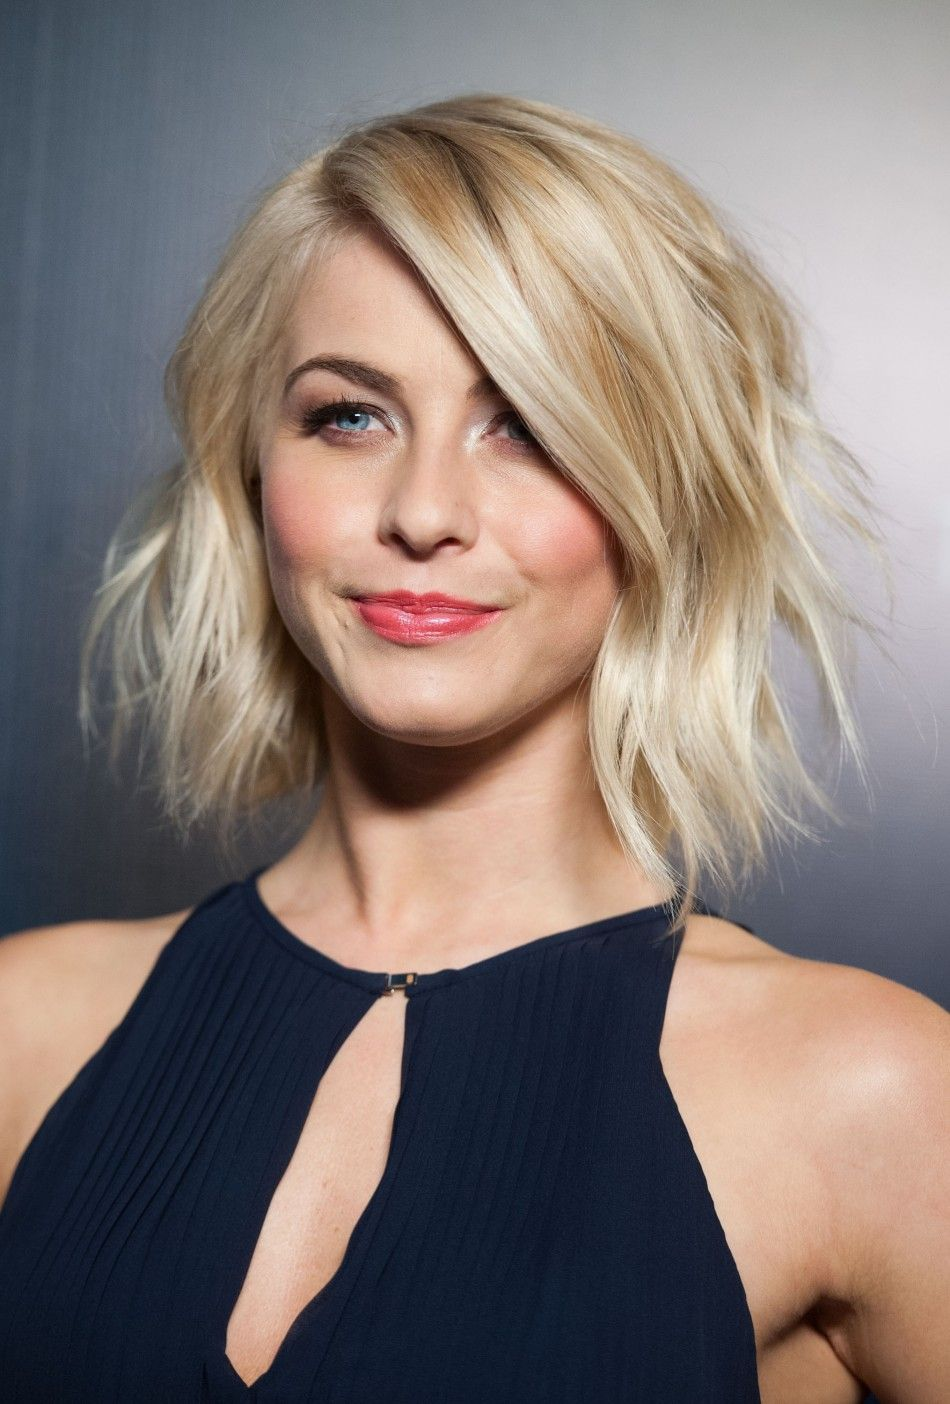 julianne hough hot | julianne hough haircut: sexy and single after